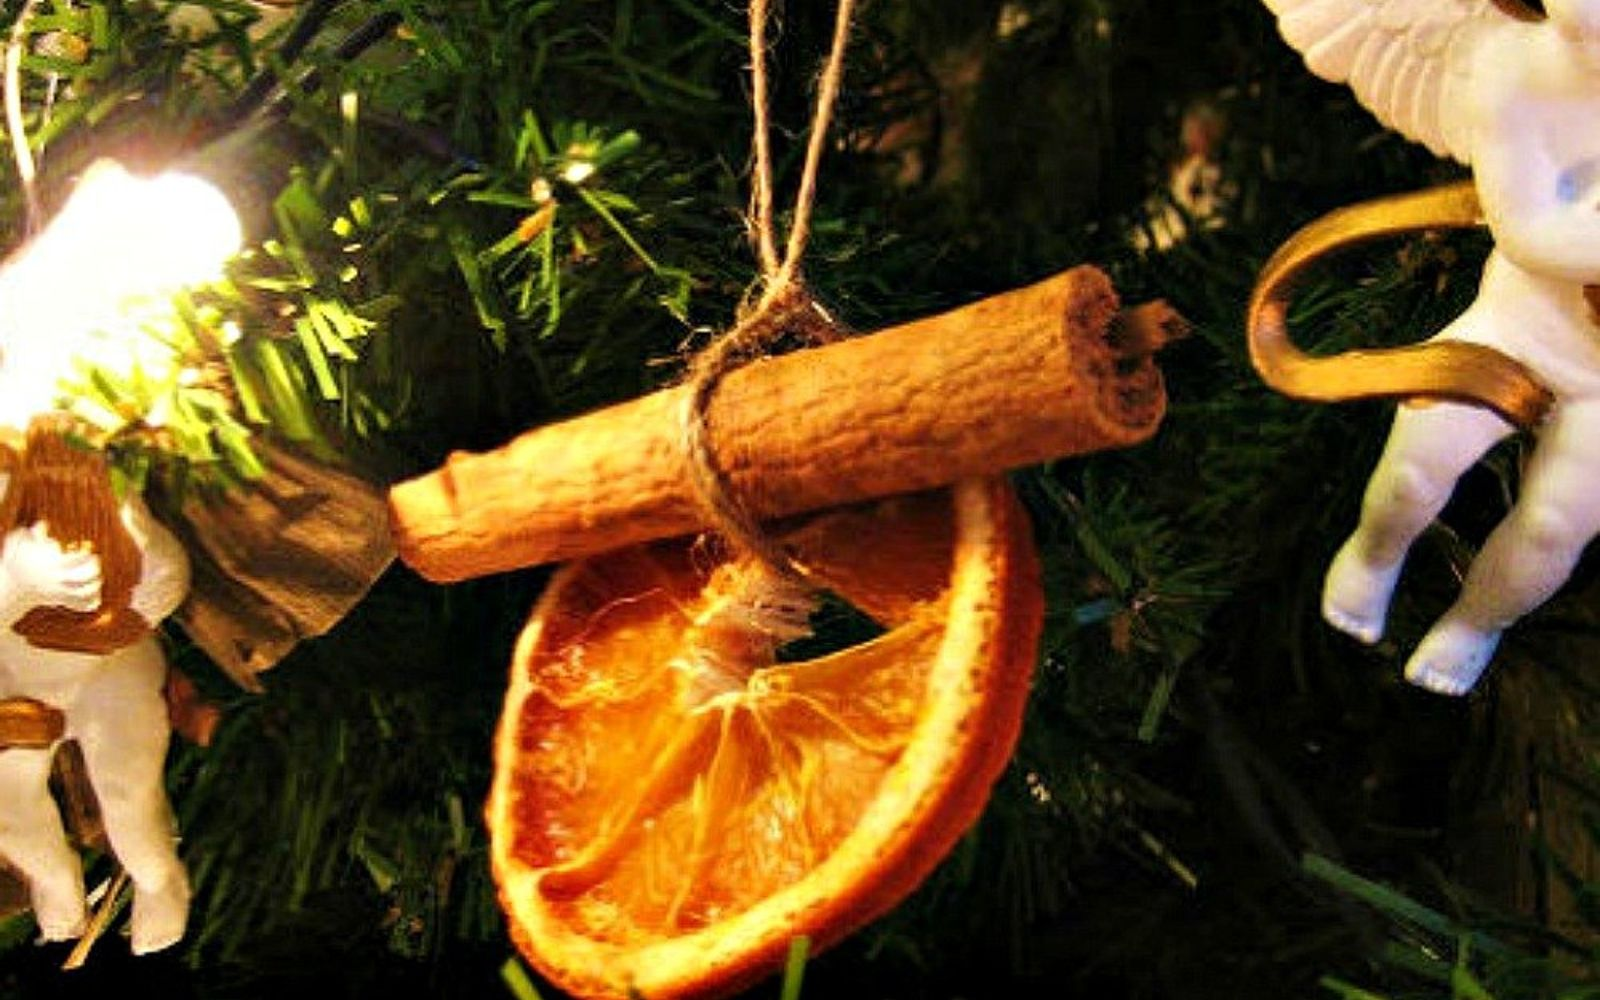 s don t stop at ornaments these tree decorating ideas are even better, christmas decorations, seasonal holiday decor, Hang dried orange slices and cloves